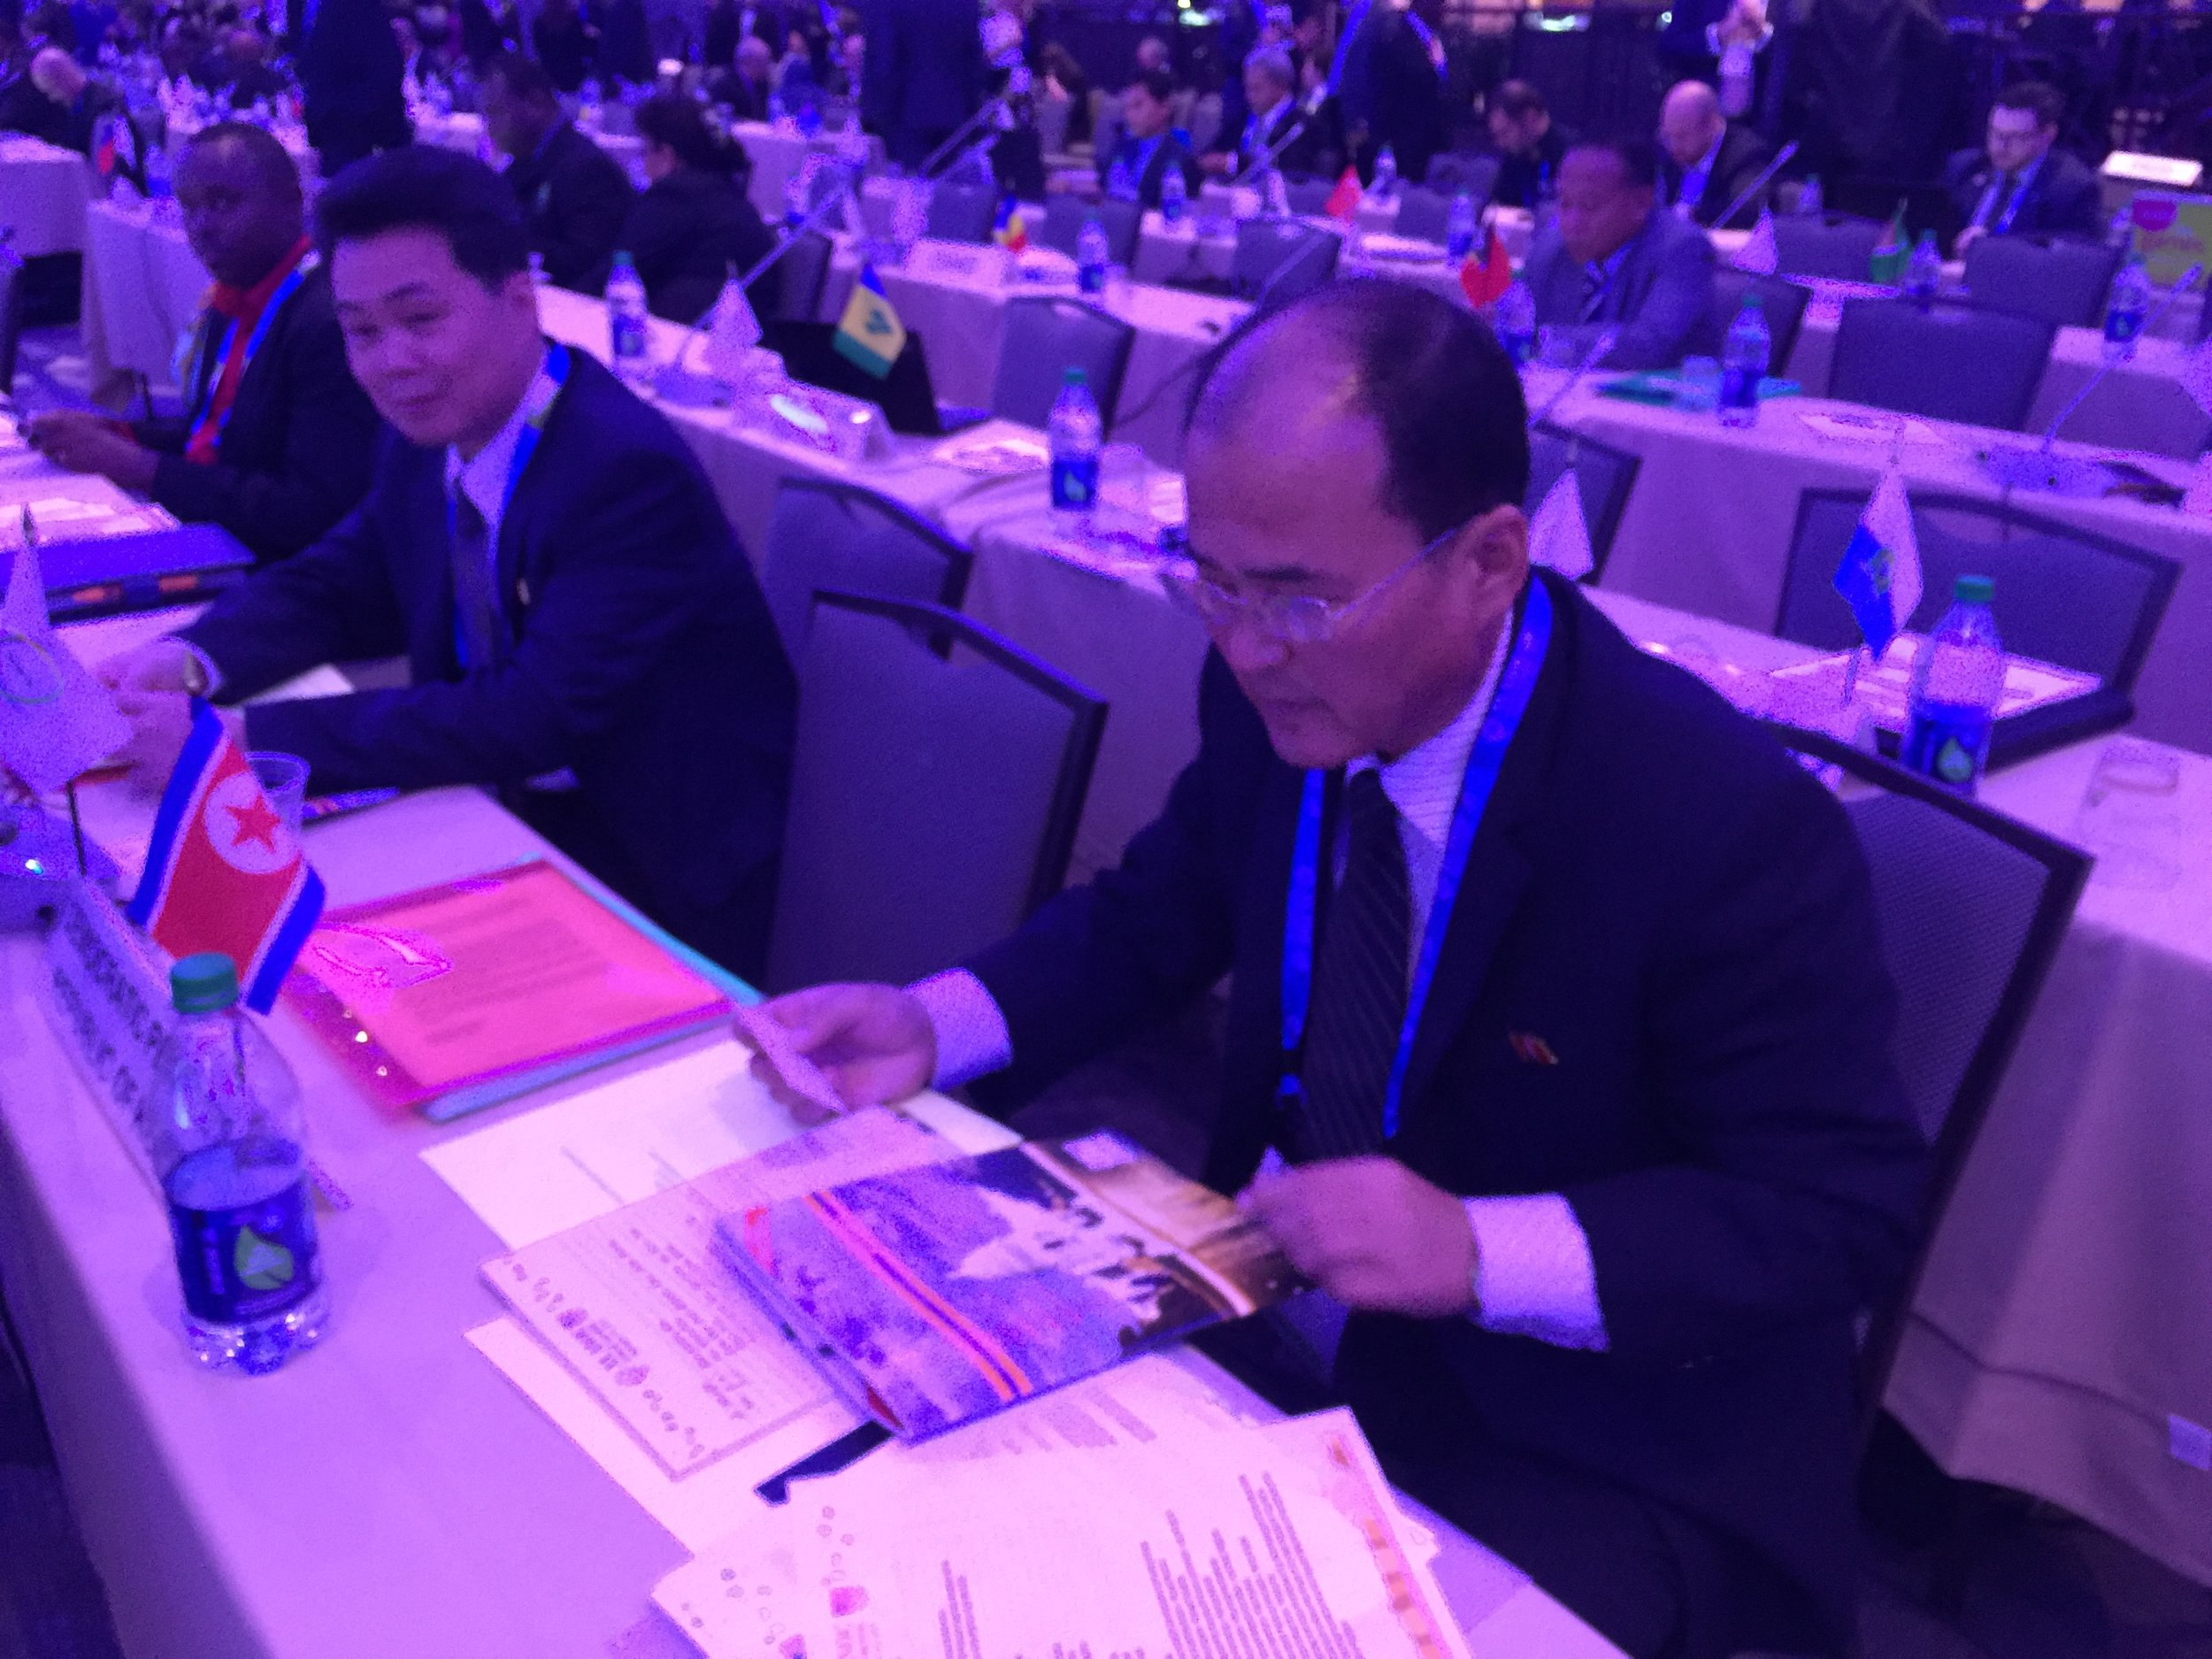 The North Korean delegation Thursday at ANOC, perusing the magazine from the Olympic publisher Around the Rings